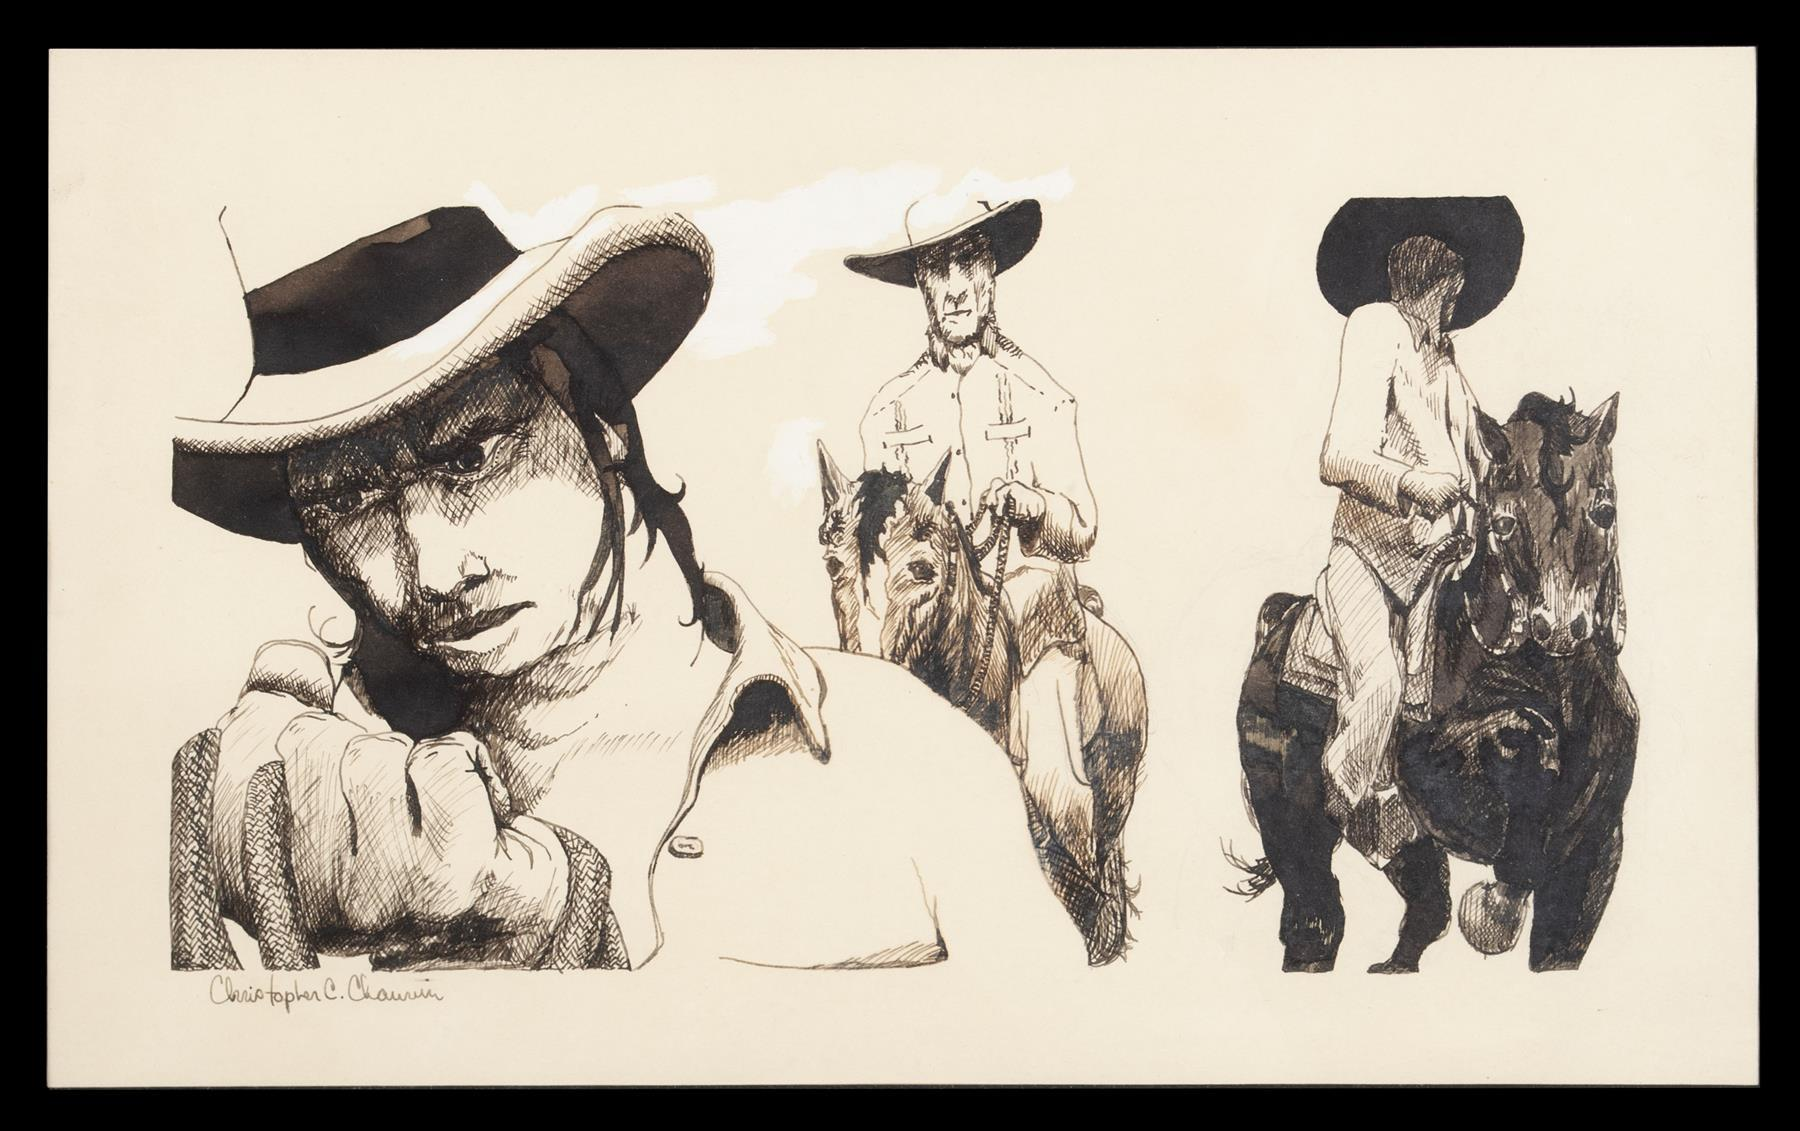 INK DRAWING BY CHRISTOPHER C. CHAUVIN